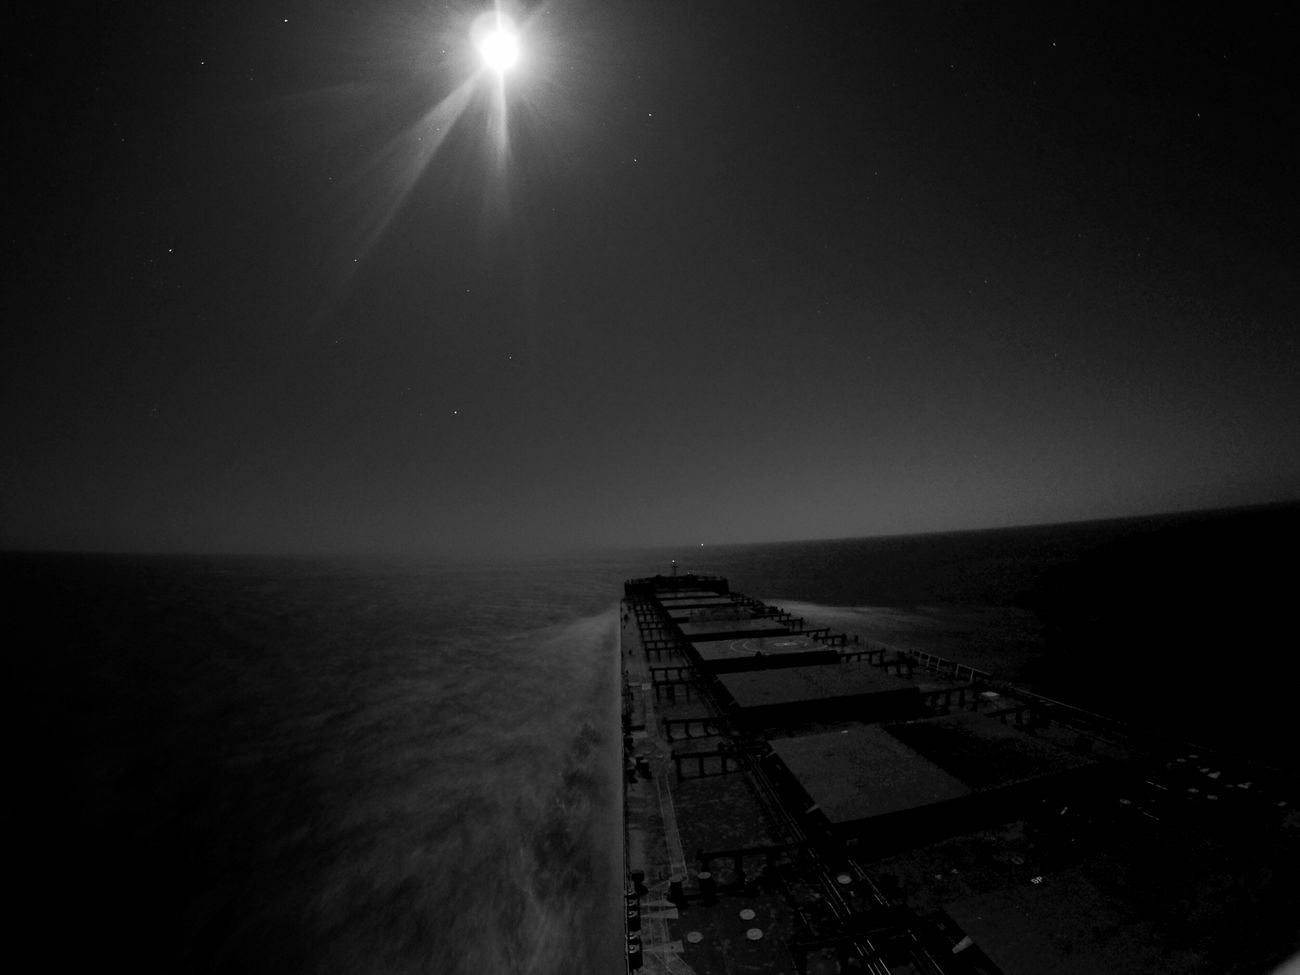 Is this a real life? or Its just a fantasy? Ships Seafarer Humansatsea Travel Goprooftheday Goprohero4 Nightphotography